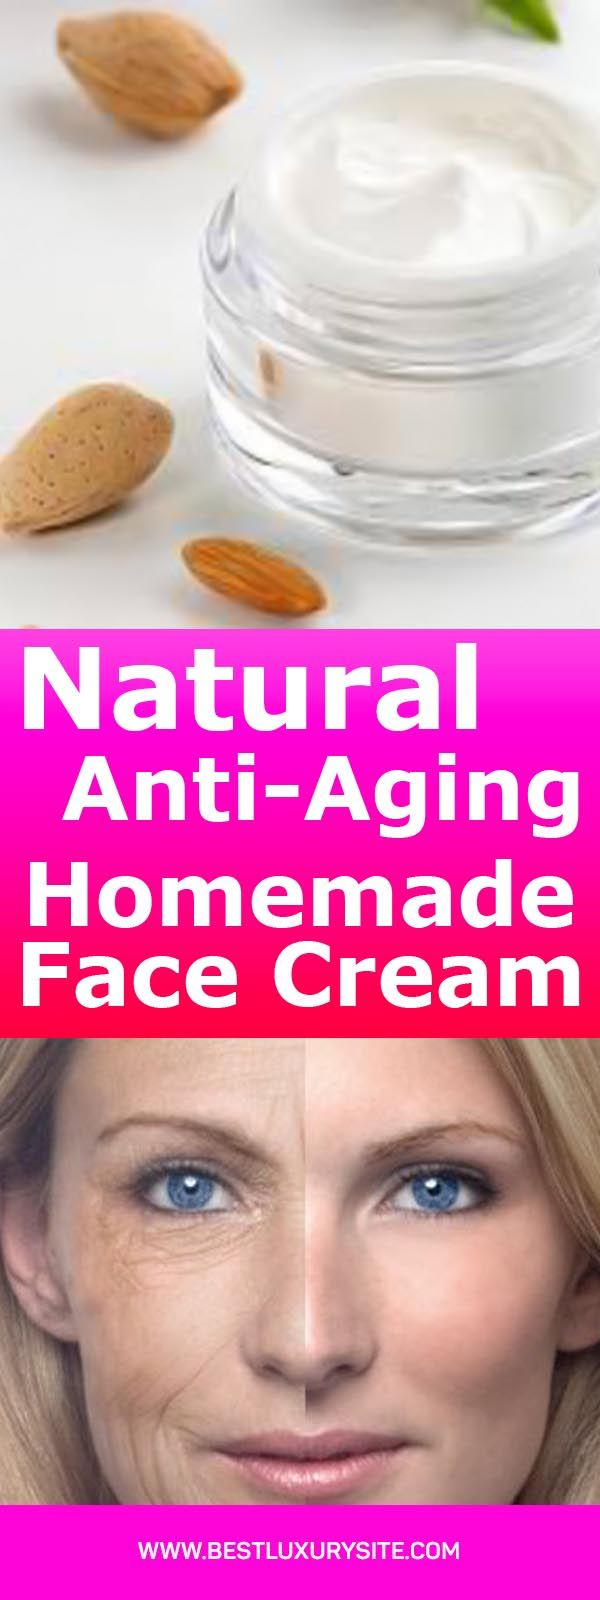 Photo of Natural Anti-Aging Homemade Face Cream